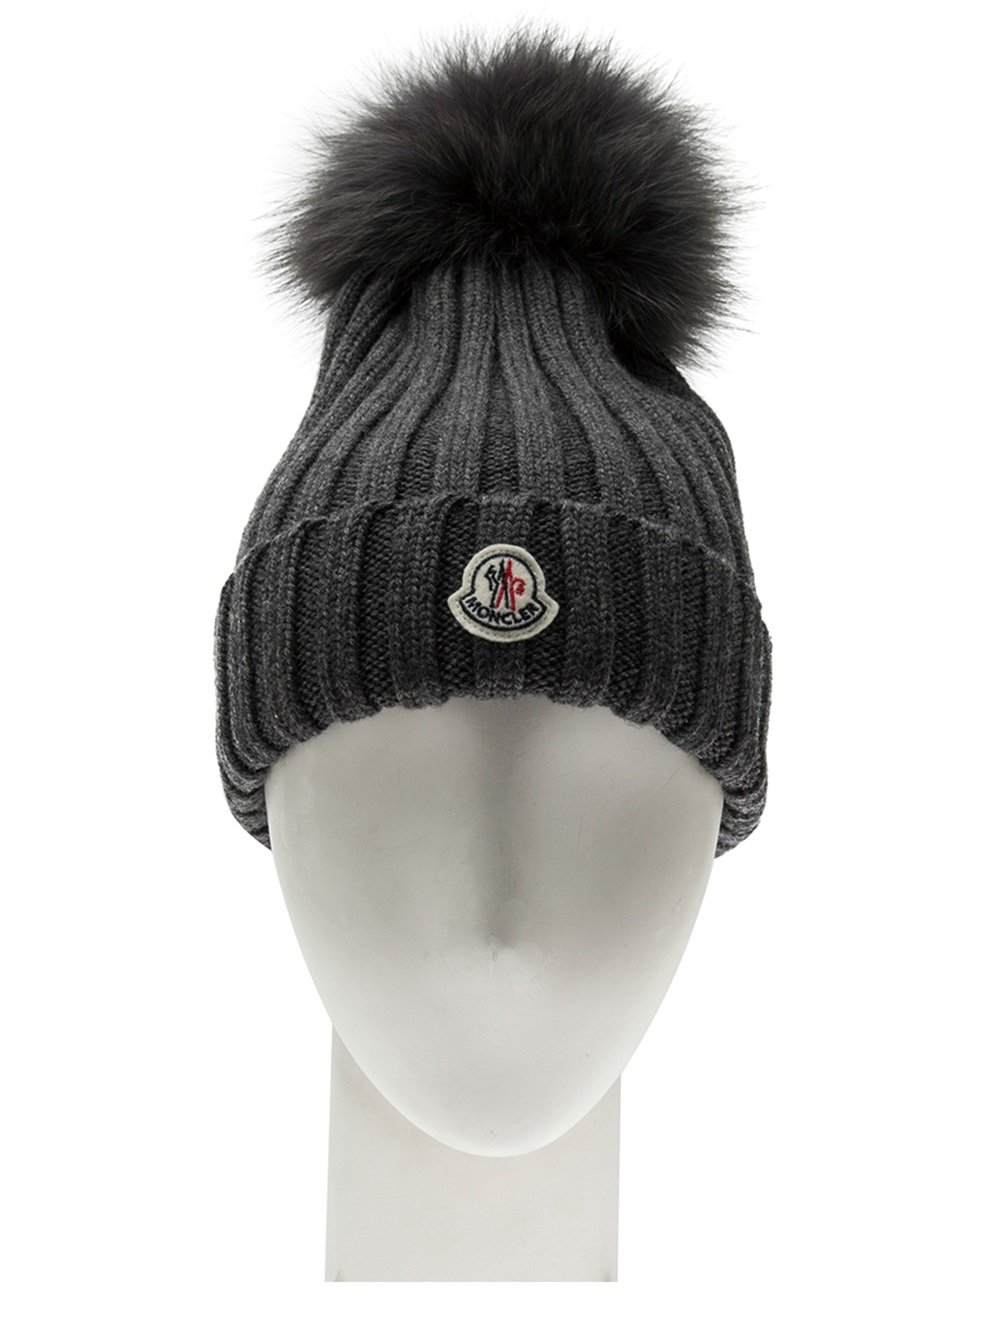 65a27e4ef3b Moncler Knit Hat With Fur Pom Pom thamescommunityfoundation.org.uk